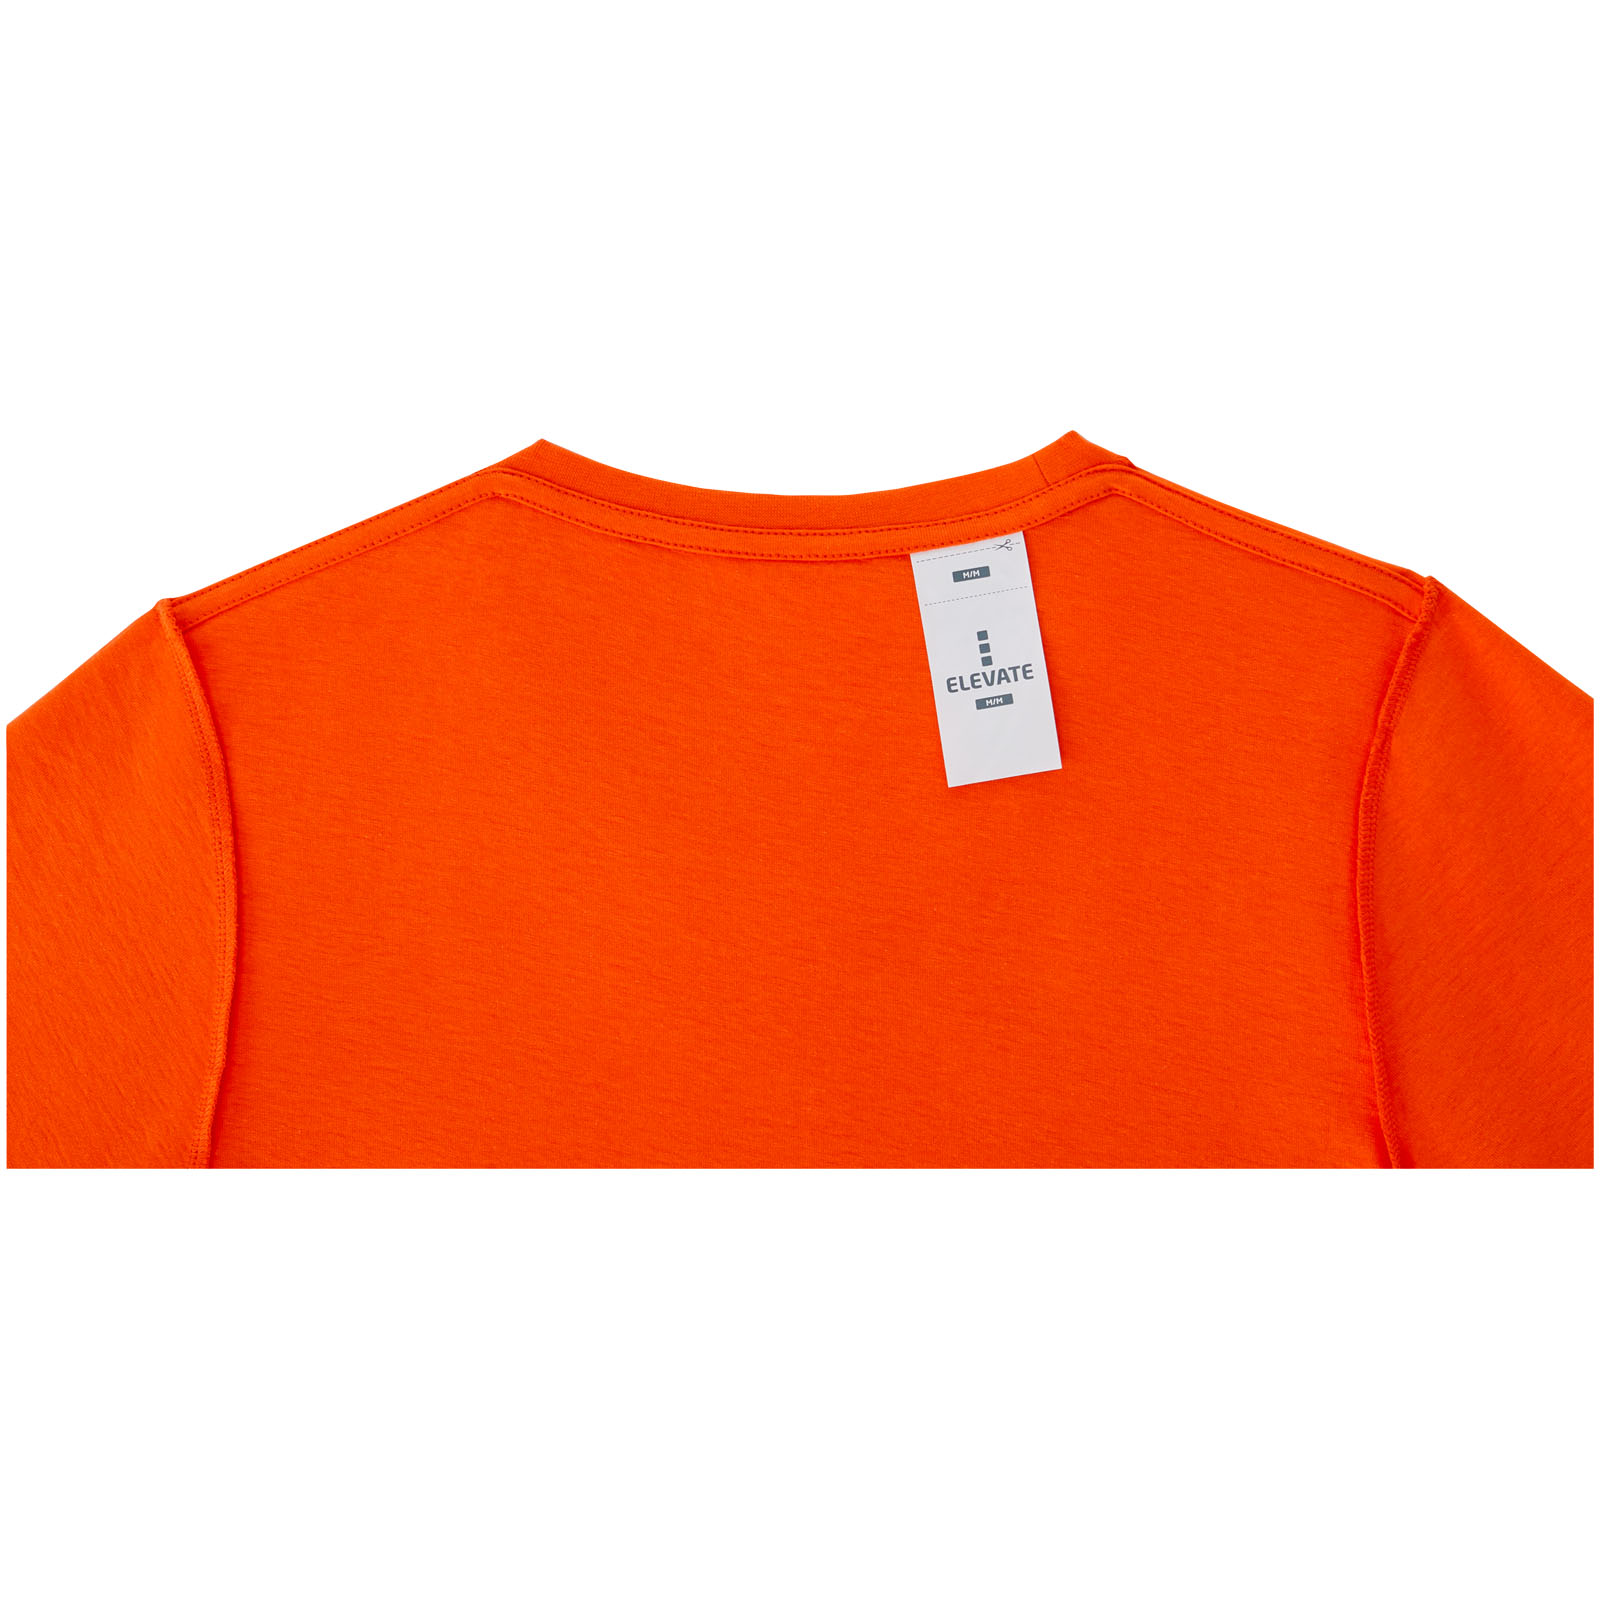 38029 Heros kortærmet dame T-shirt i Orange